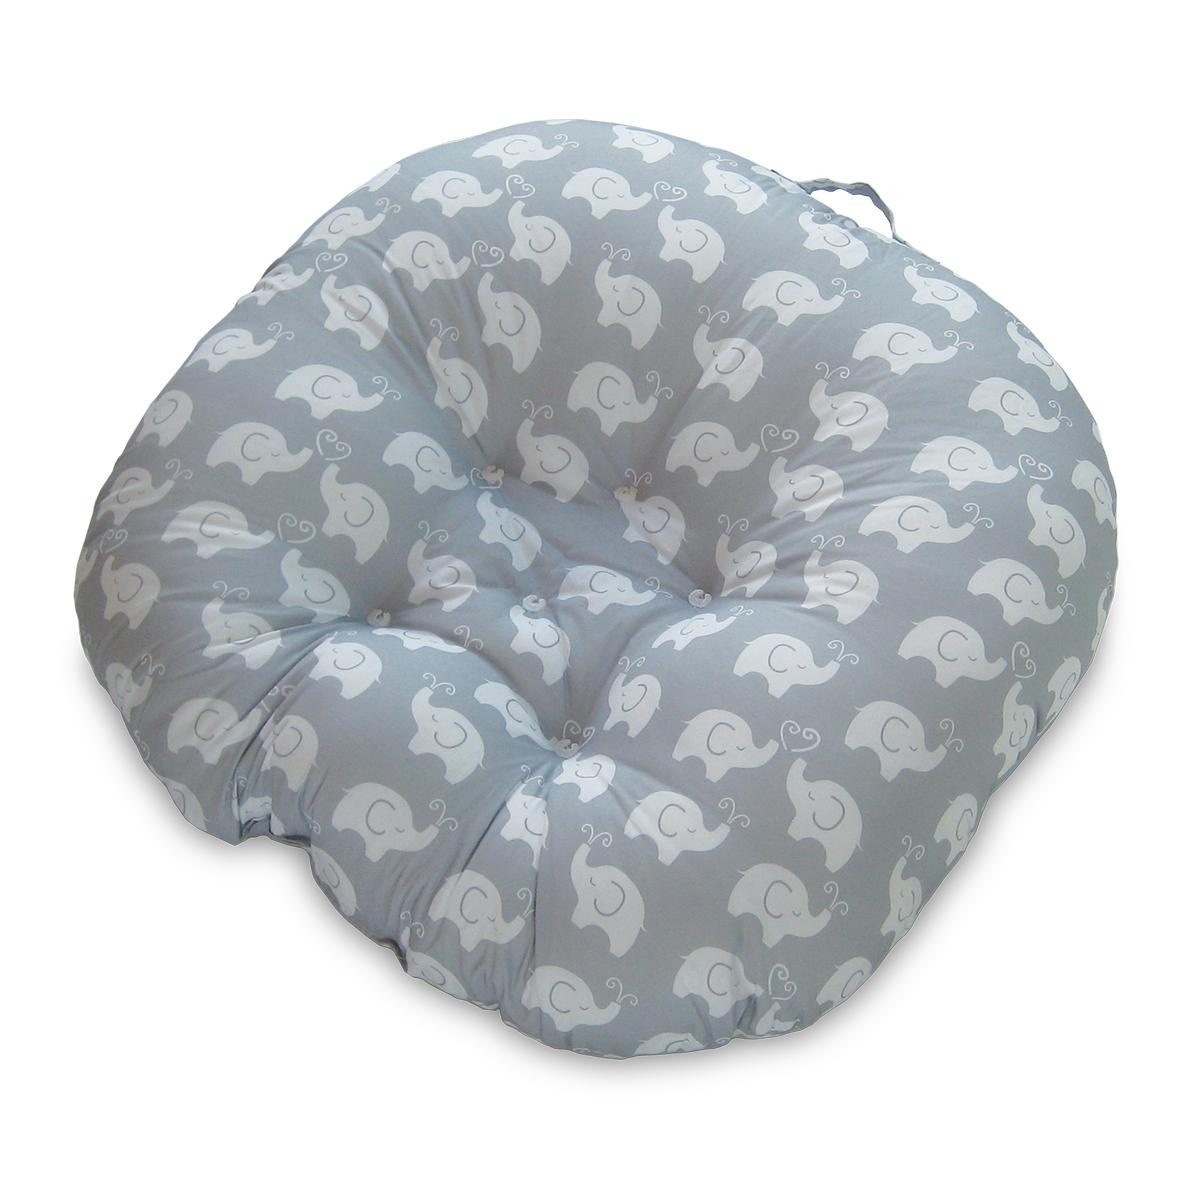 boppy baby chair hi boy beach newborn lounger pillow elephants